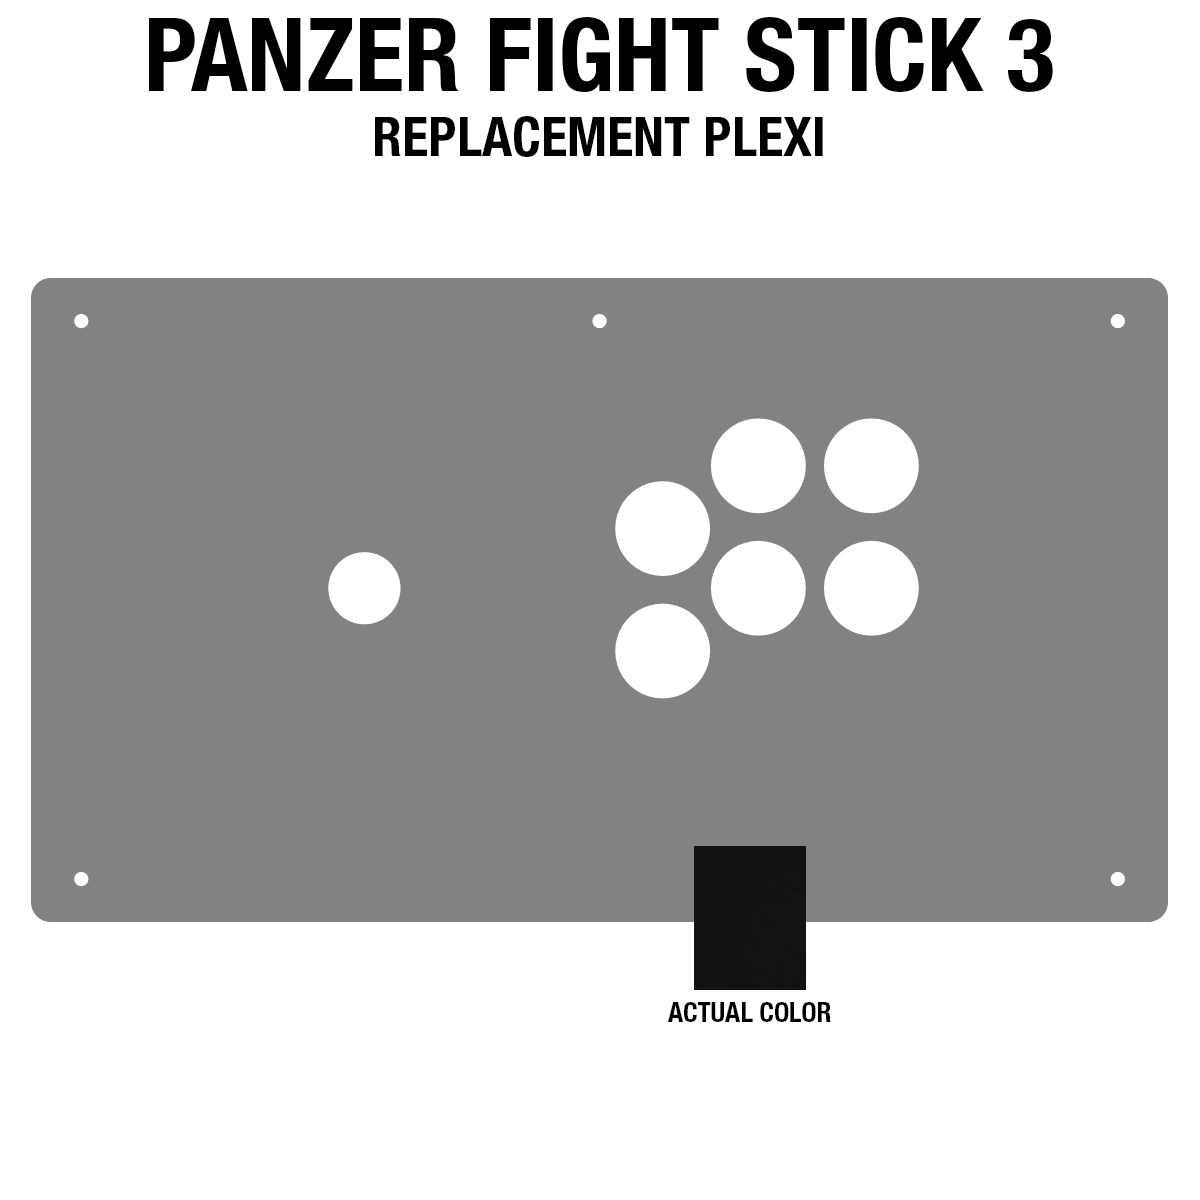 Panzer Fight Stick 3 Plexi - Black Frosted (6 Buttons)